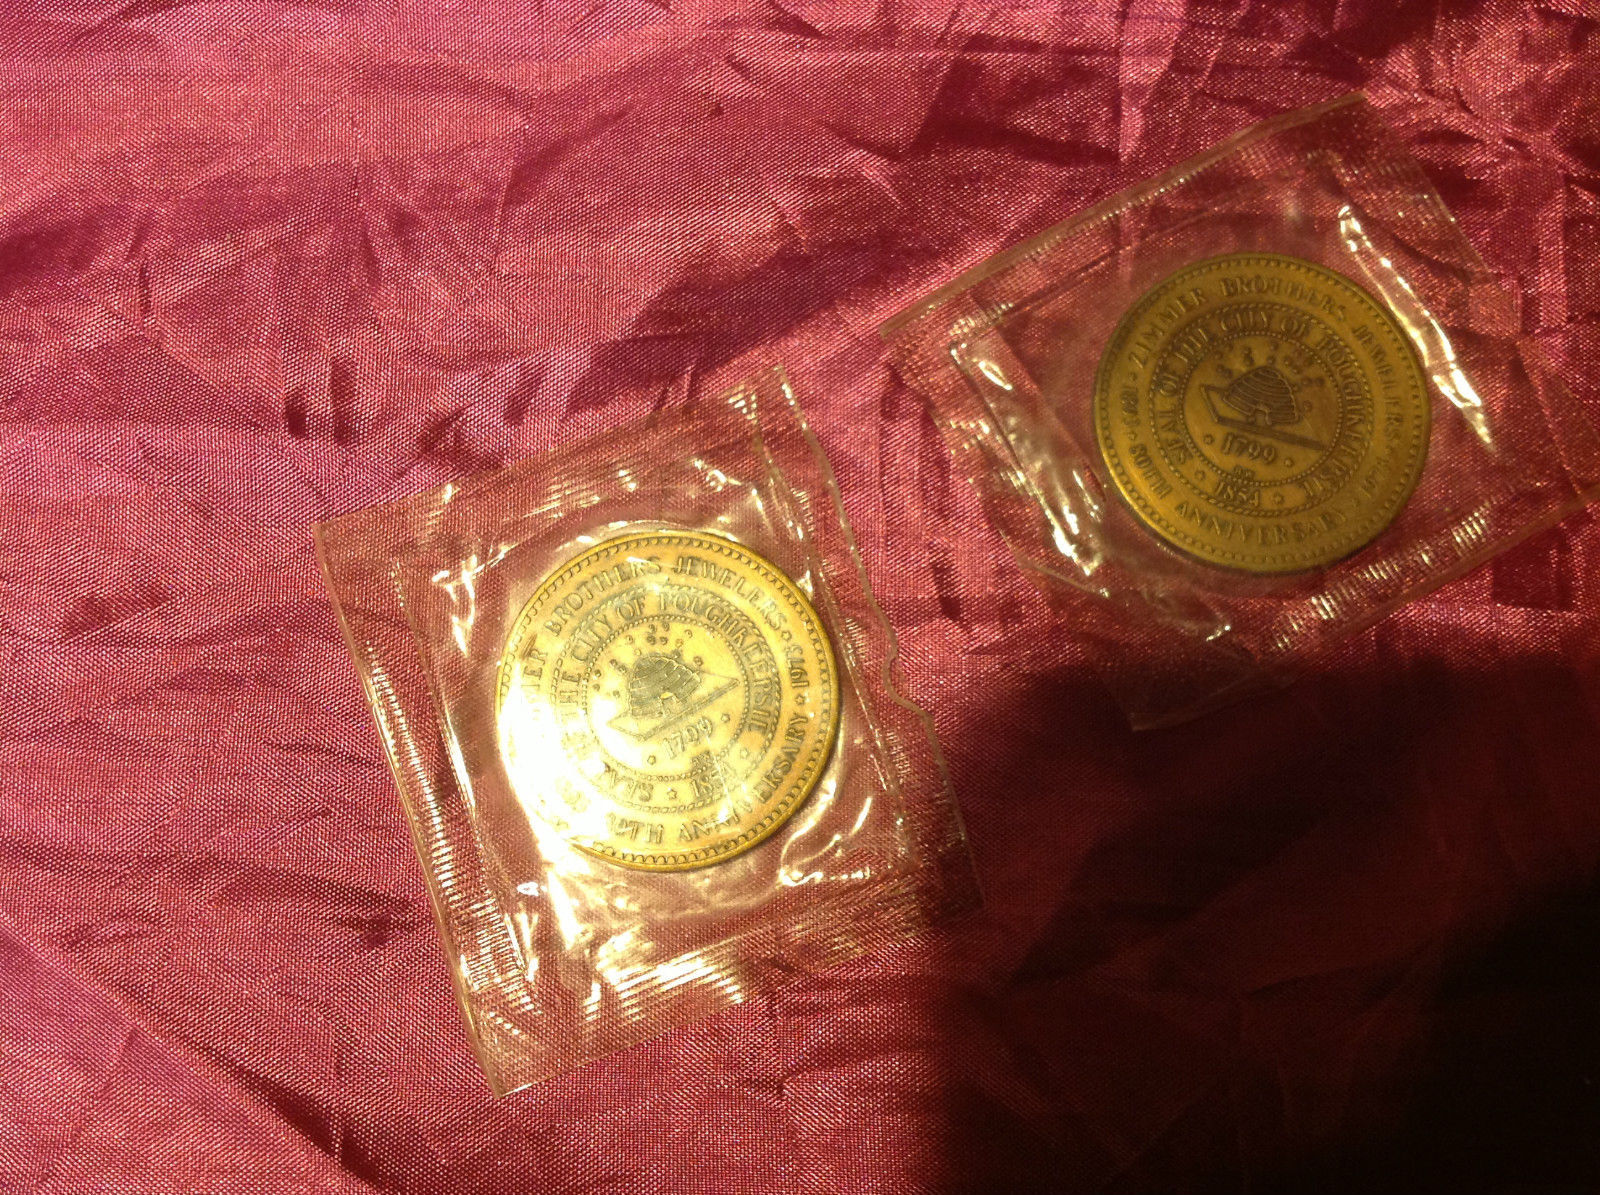 seal of the city of Poughkeepsie  bronze color coins